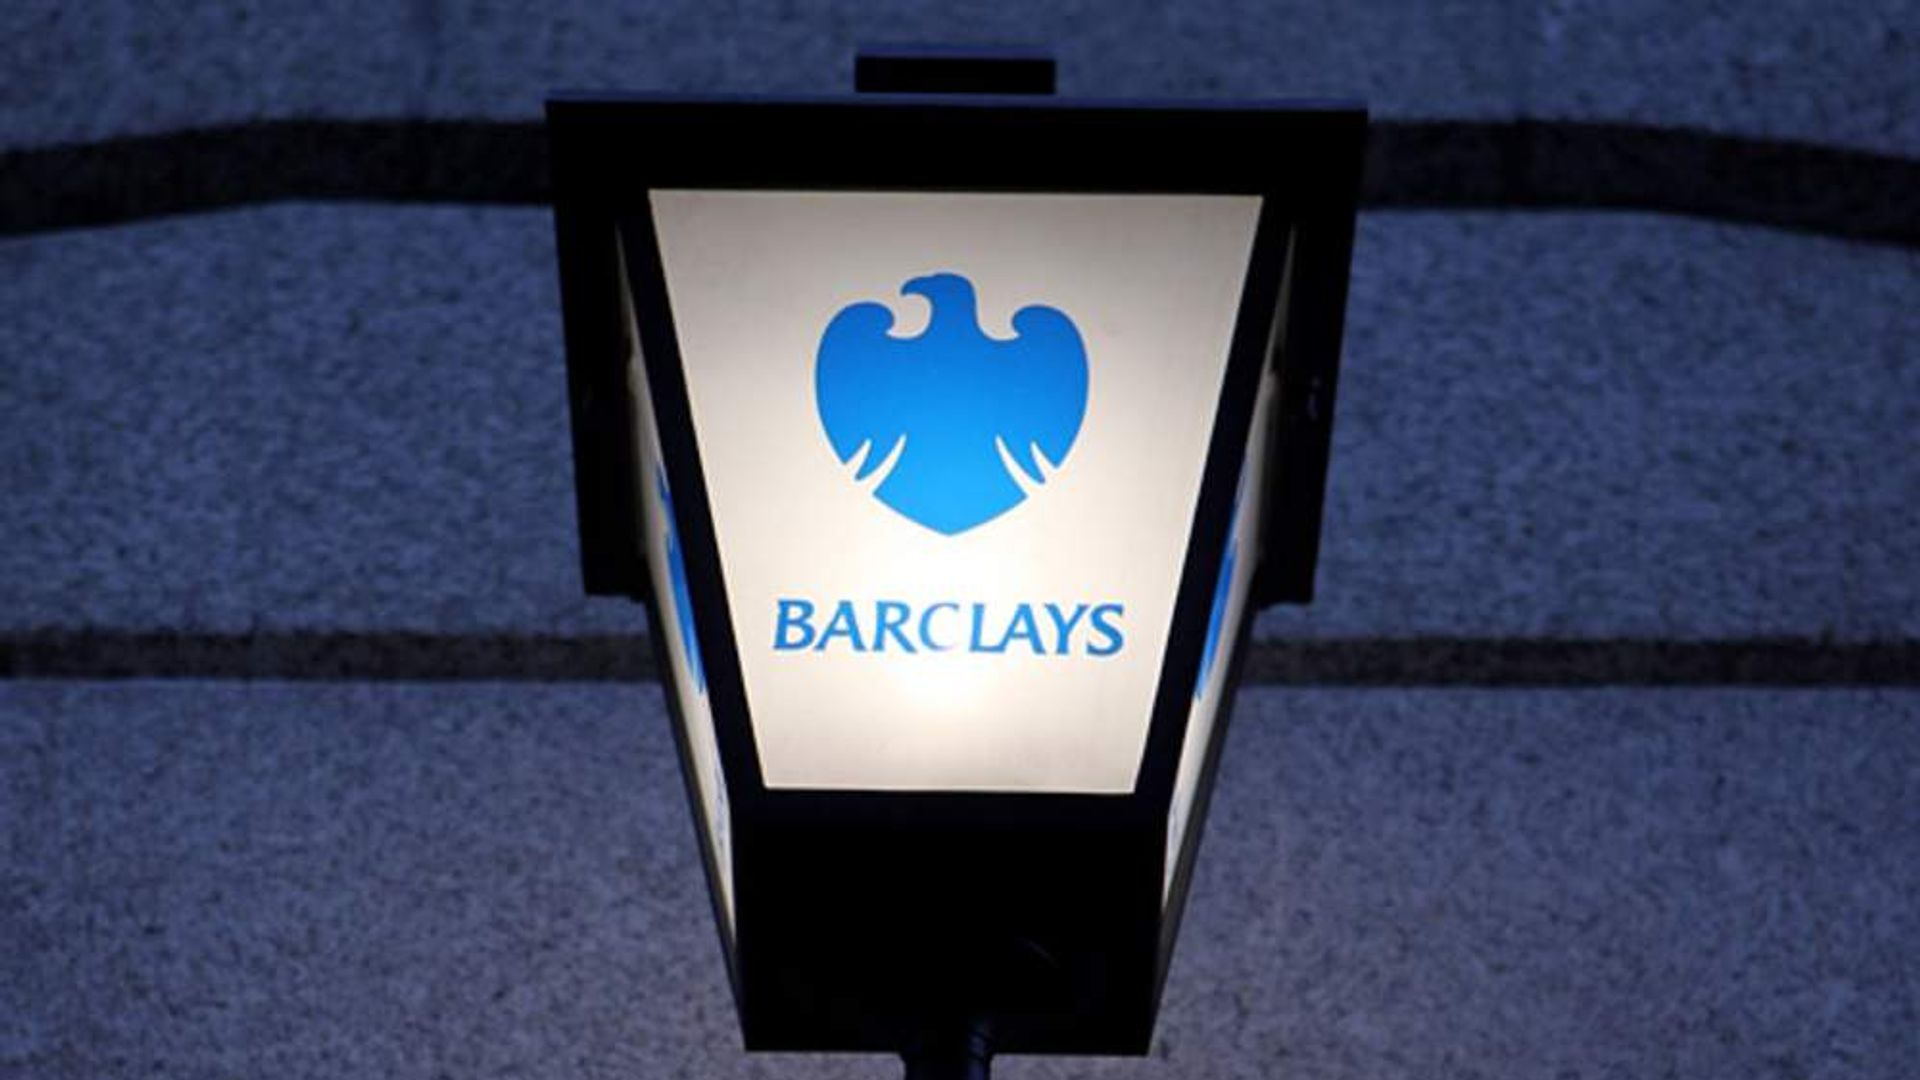 background for e banking in barclays bank uganda The highlight of islamic banking contained in the new government amendments to financial institutions (amendments) bill, 2015 is its stand on interest charged on borrowed money and other islamic banking products such as agency banking, bancassurance - (insurance provided by banks), mobile banking and money transfer.